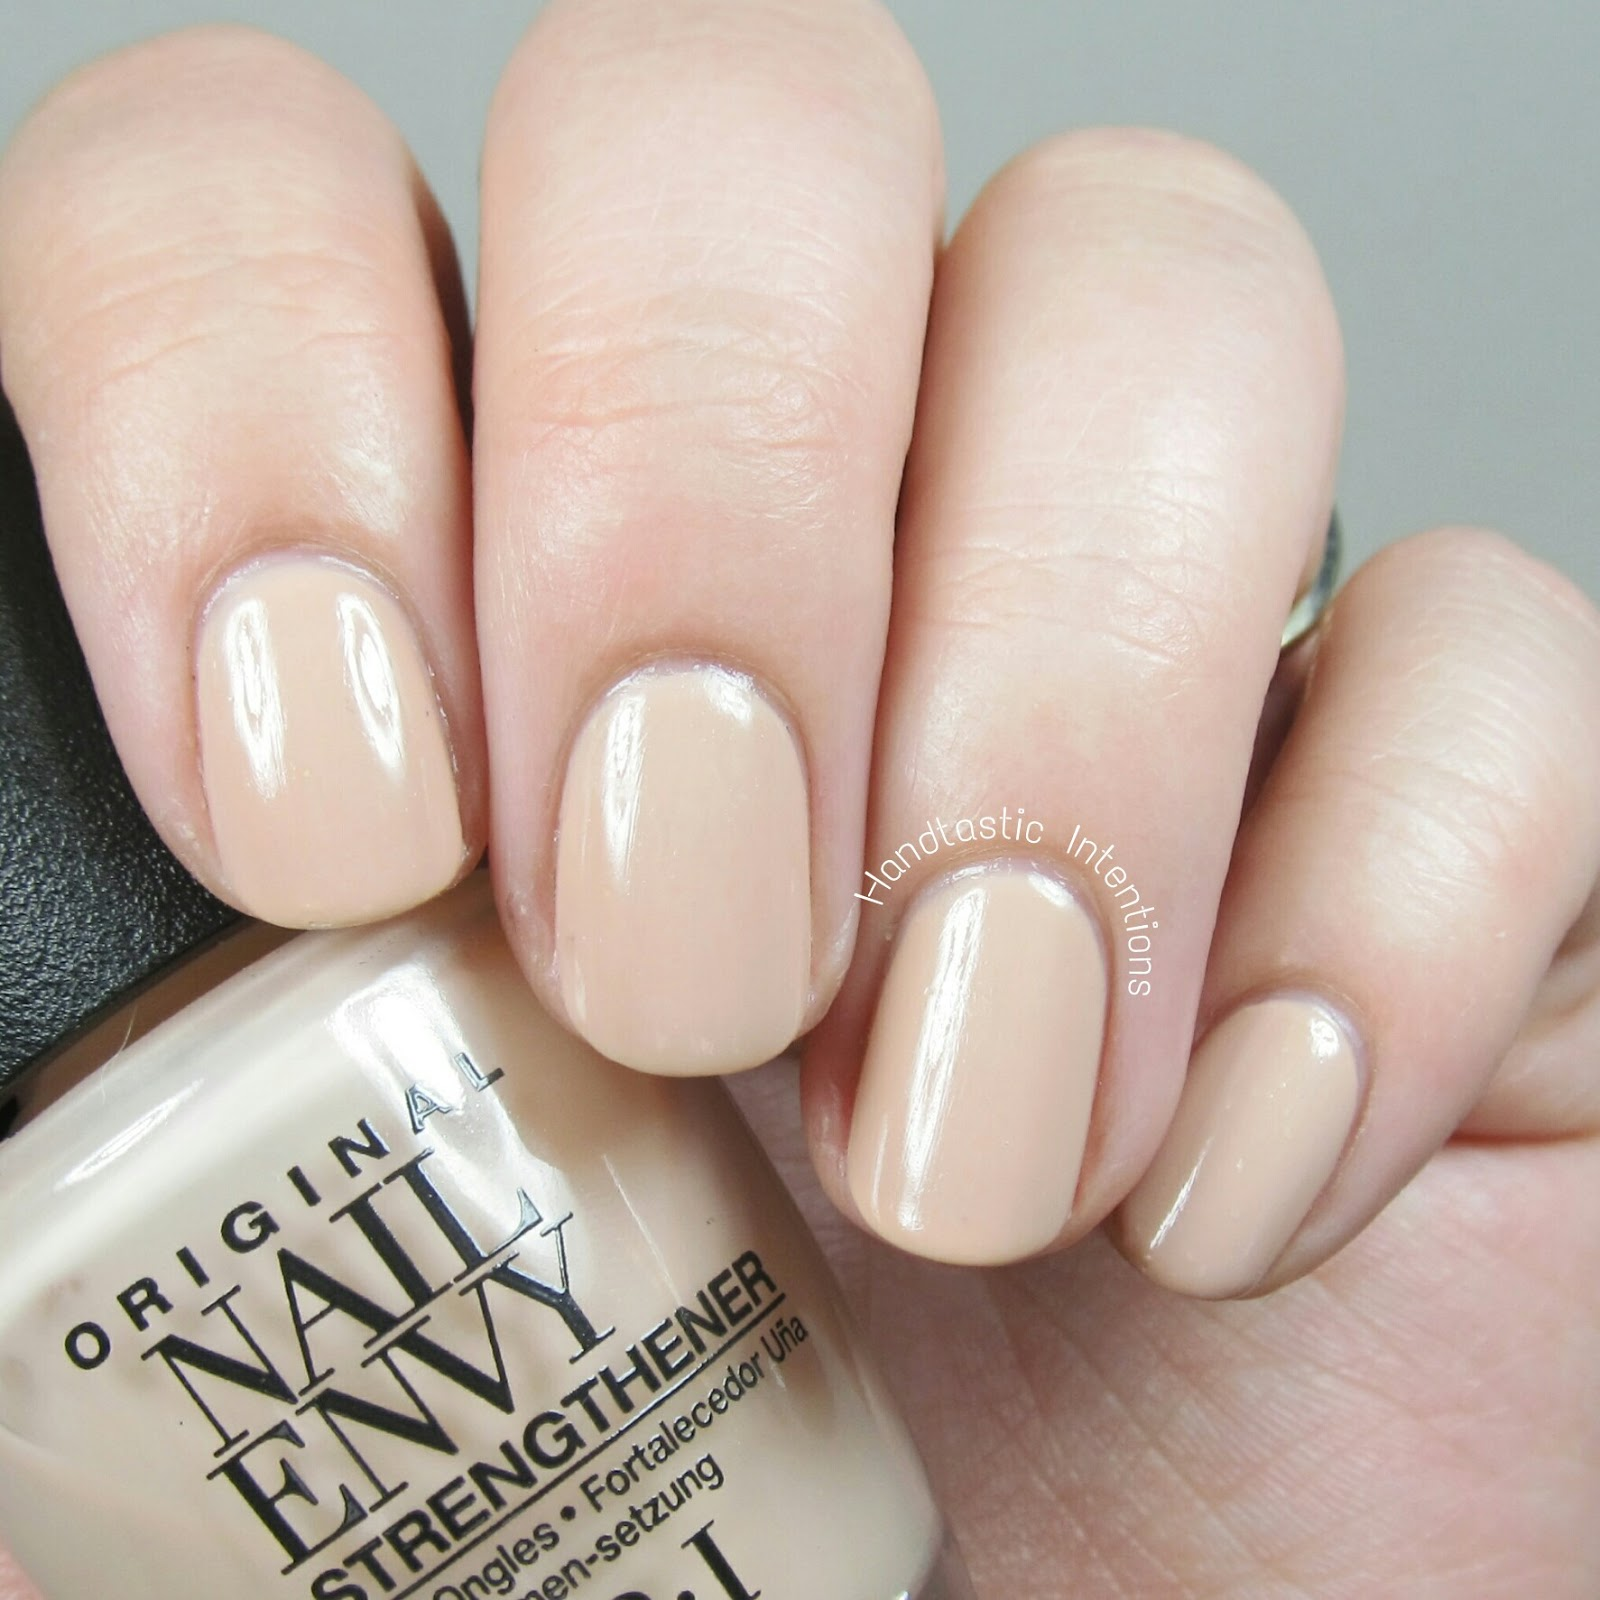 Opi Nail Envy Just My Look: Handtastic Intentions: OPI Nail Envy Treatment In Samoan Sand